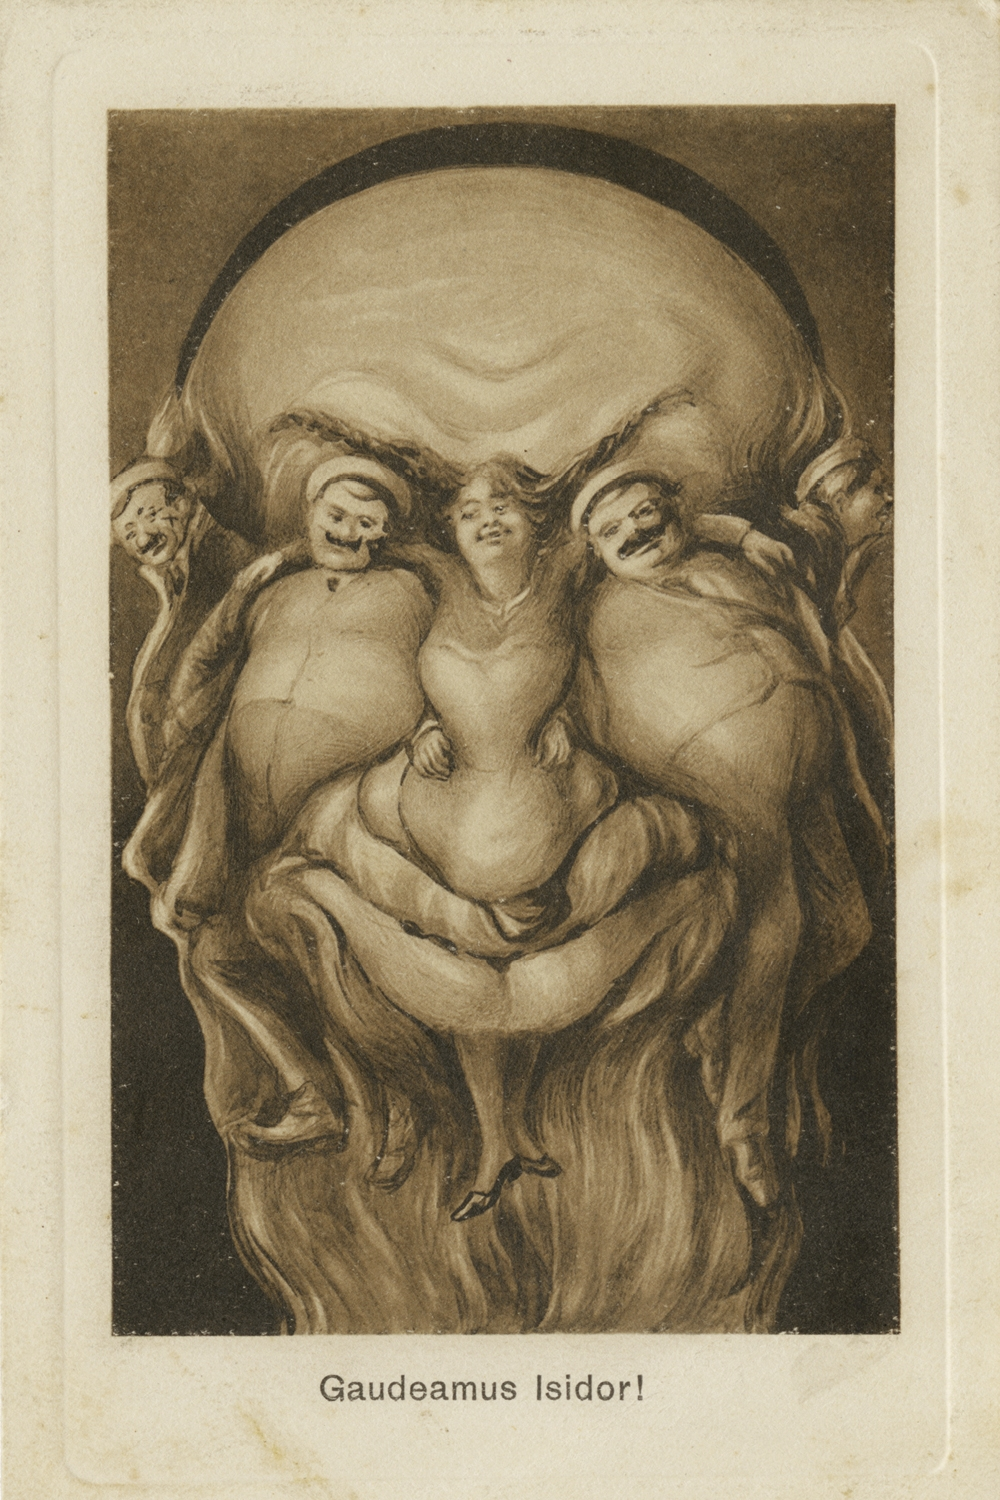 """Grotesque composite illustration of a Jewish face. Titled """"Gaudeamus Isidor!"""" ca. 1920"""